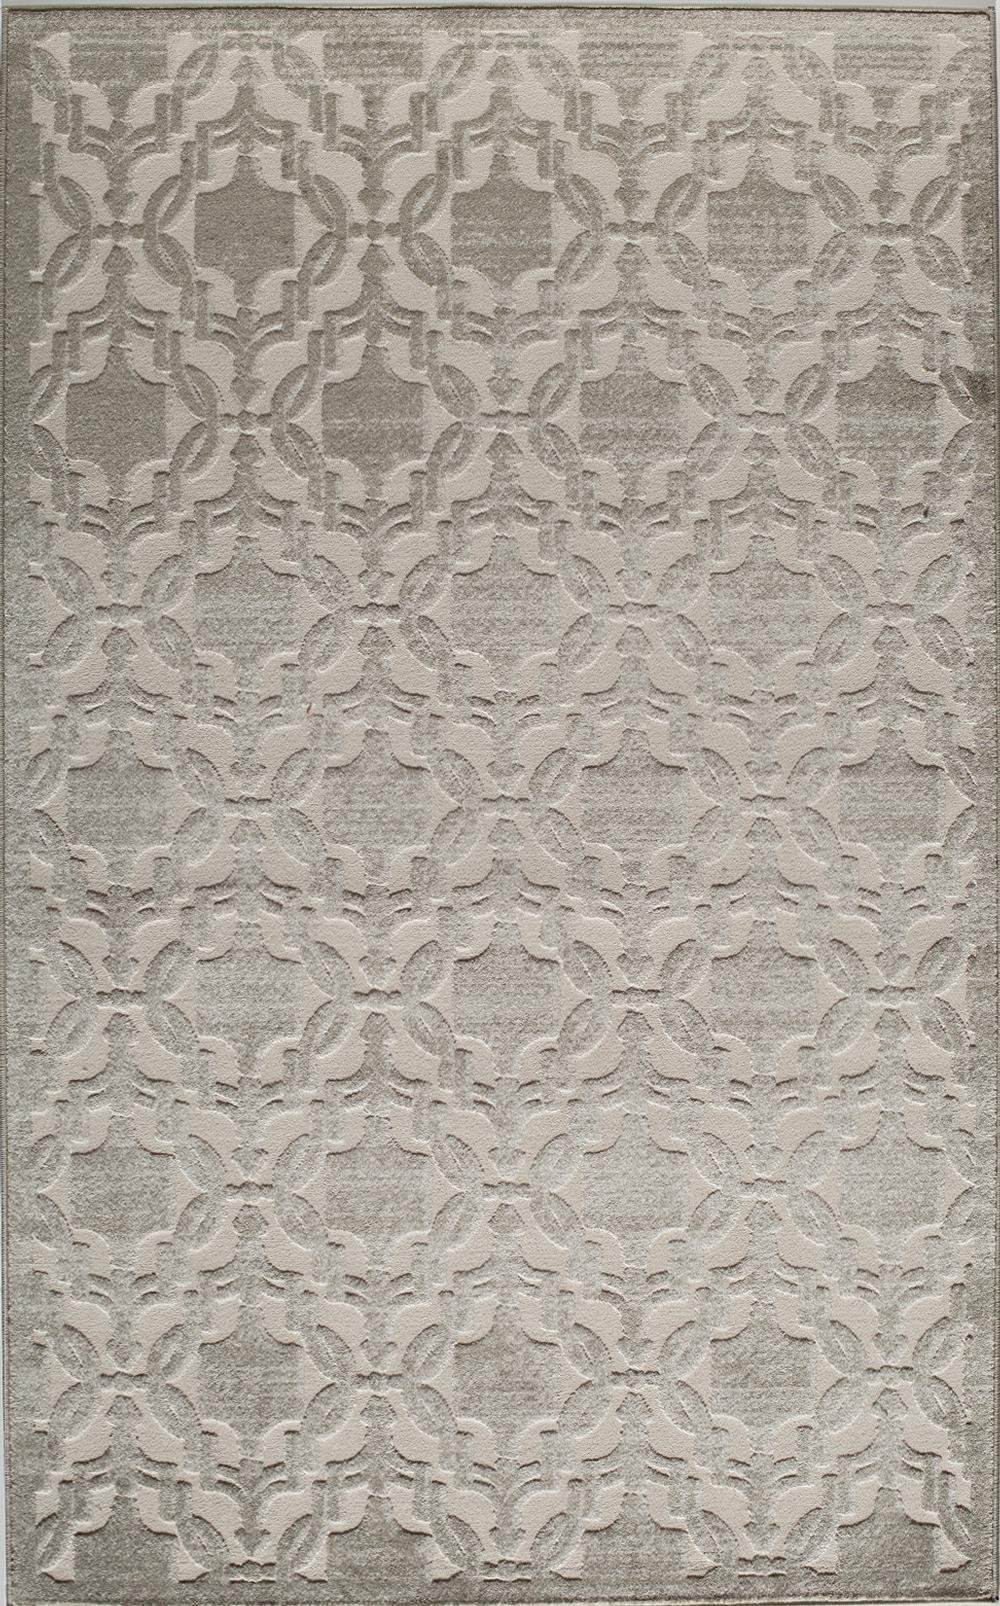 Rugs America RA25996 RV500A Area Rug, 5' x 8', Cream by Rugs America